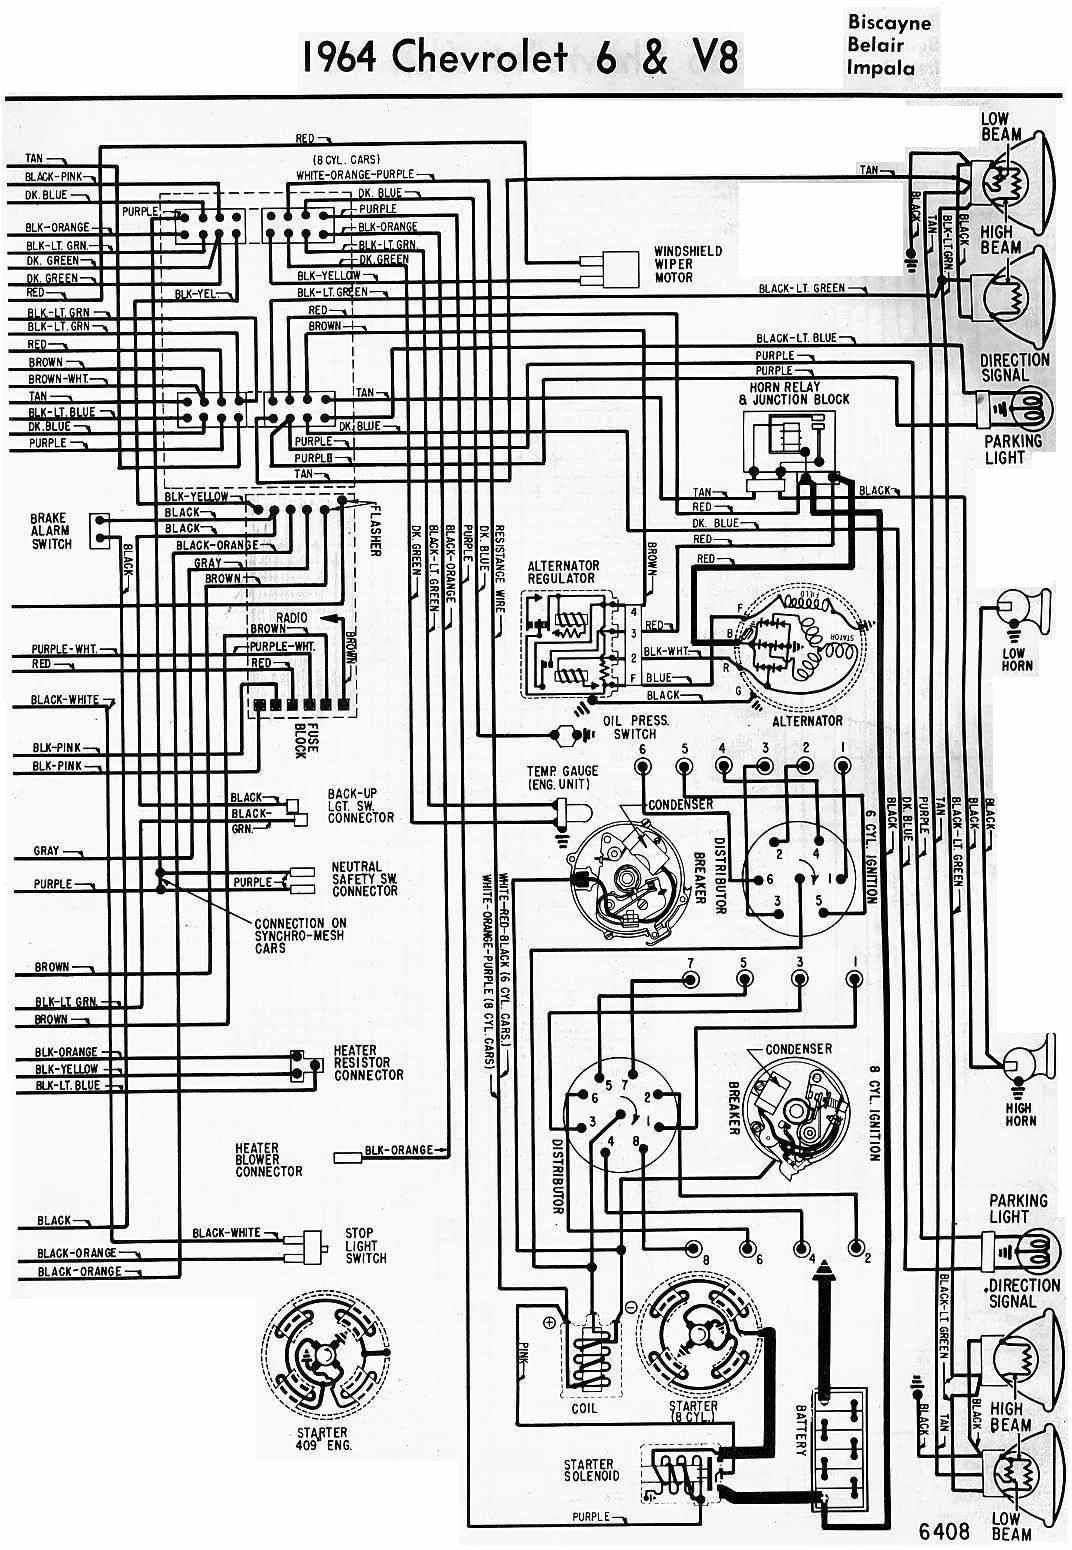 Unique vn v8 wiring diagram photos the wire magnoxfo vn v8 wiring diagram wiring trailer tail light wiring diagram 1998 s10 asfbconference2016 Image collections